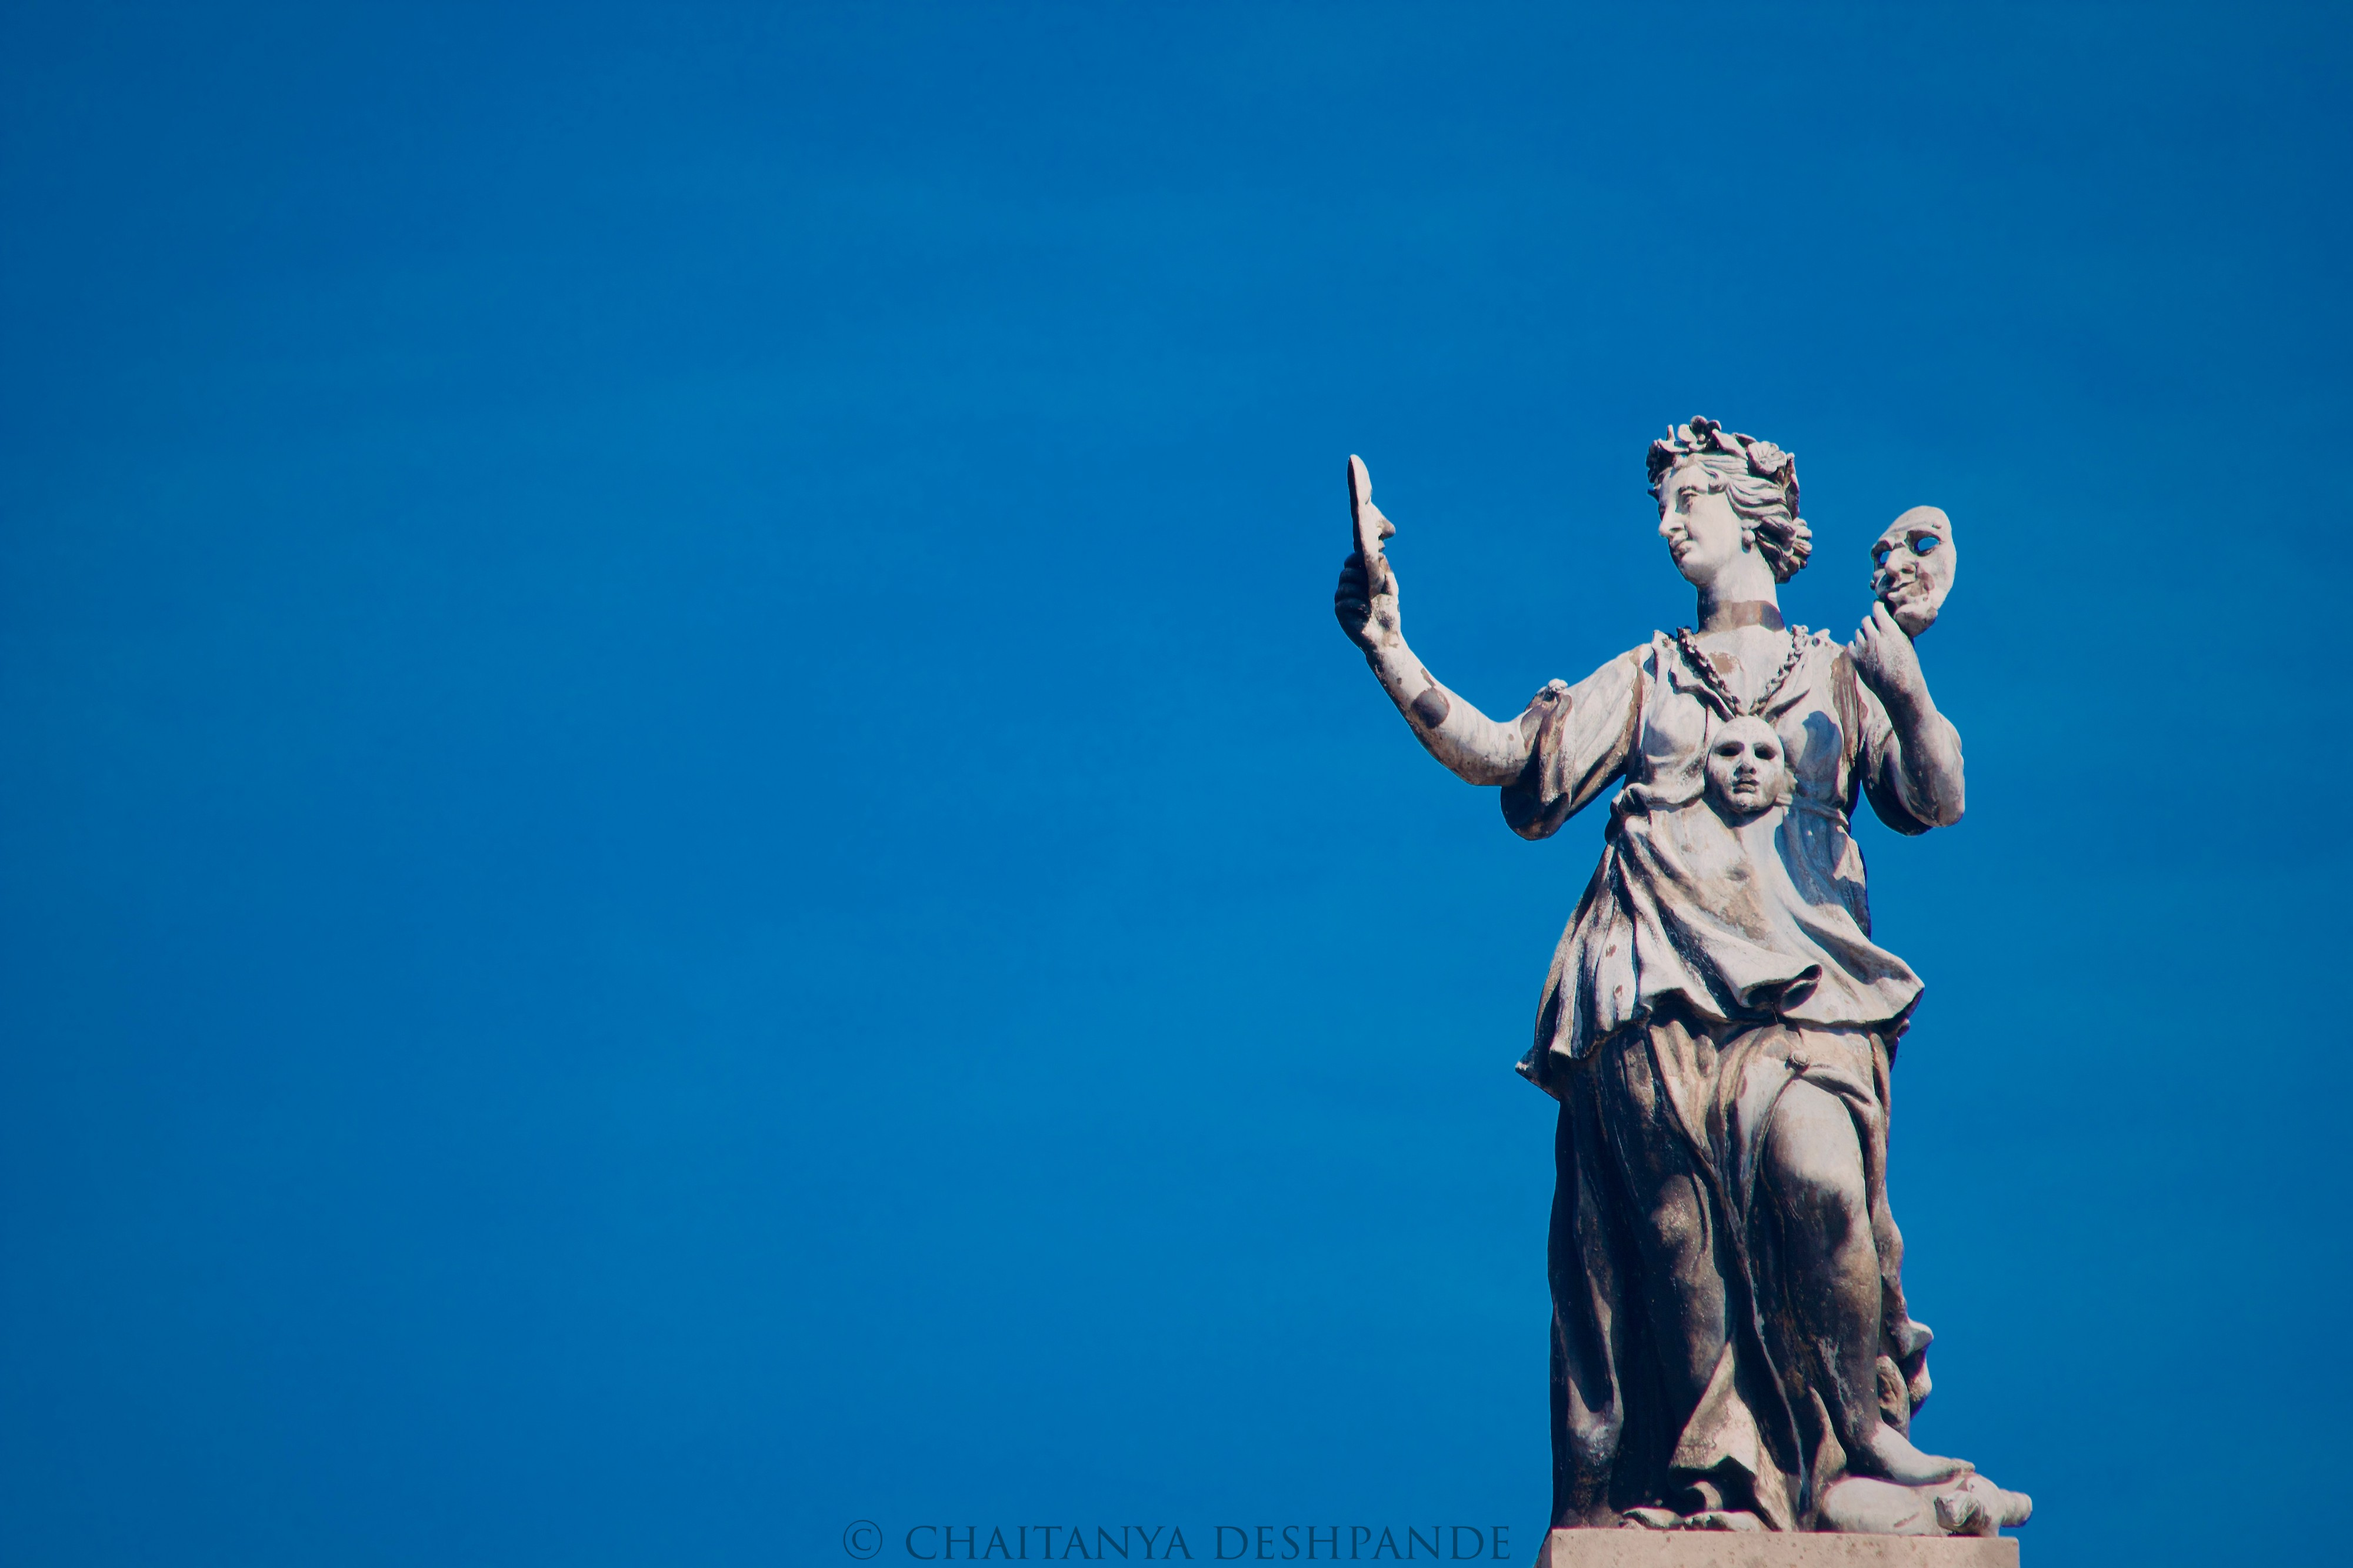 Either Melpomene or Thalia, the muses of tragedy and comedy atop the Old Clarendon Building, Oxford.